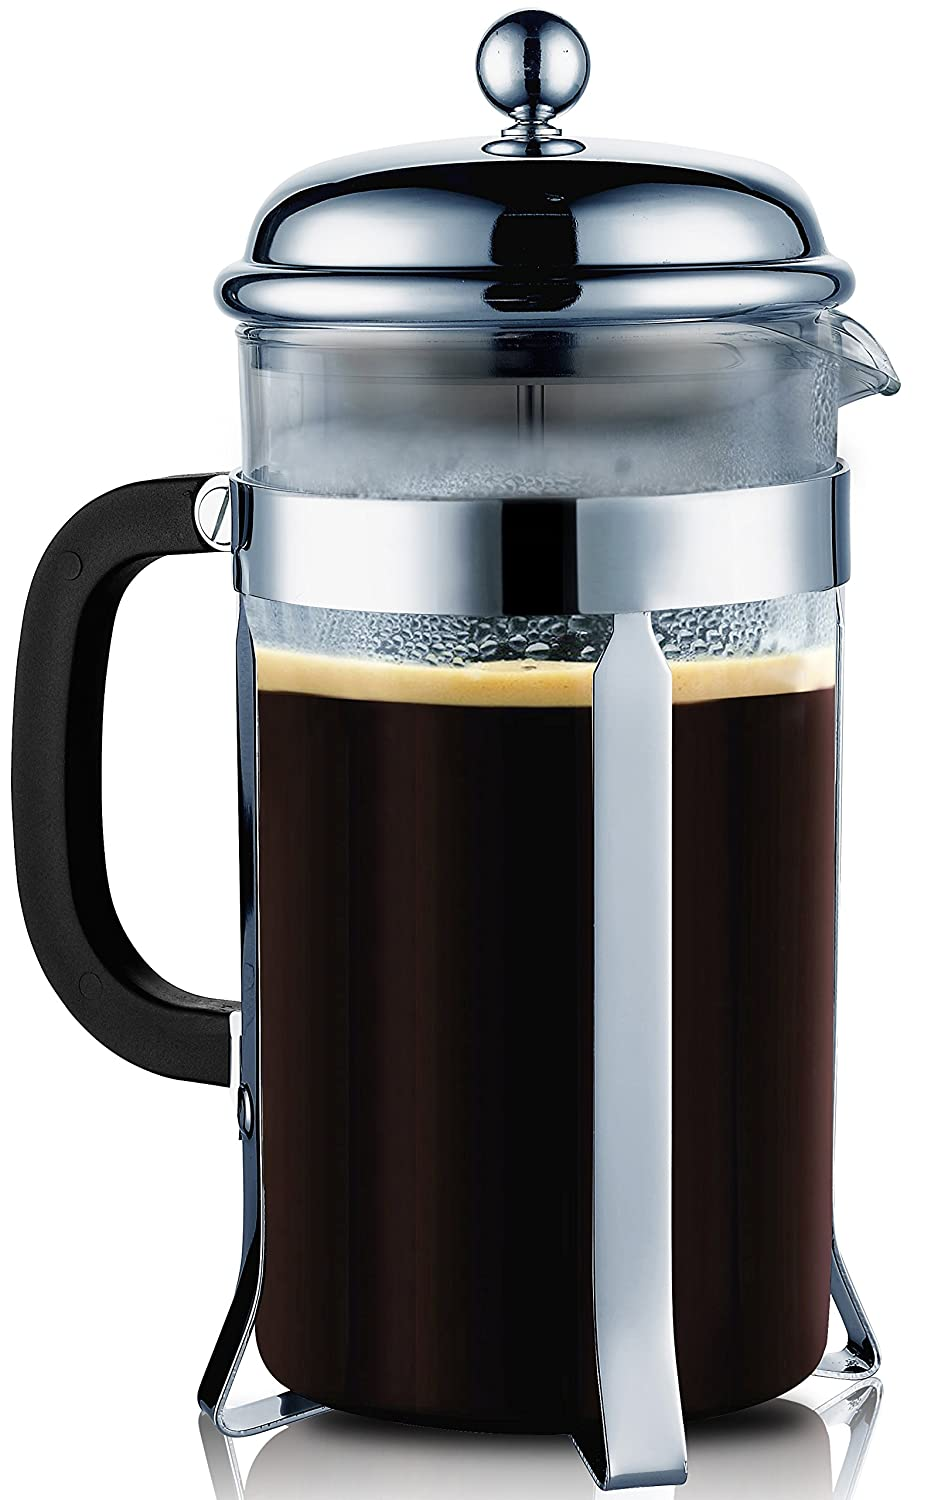 New French Press Coffee Espresso Maker 8 Cup Sterling Steel 34 oz Durable Cafe eBay